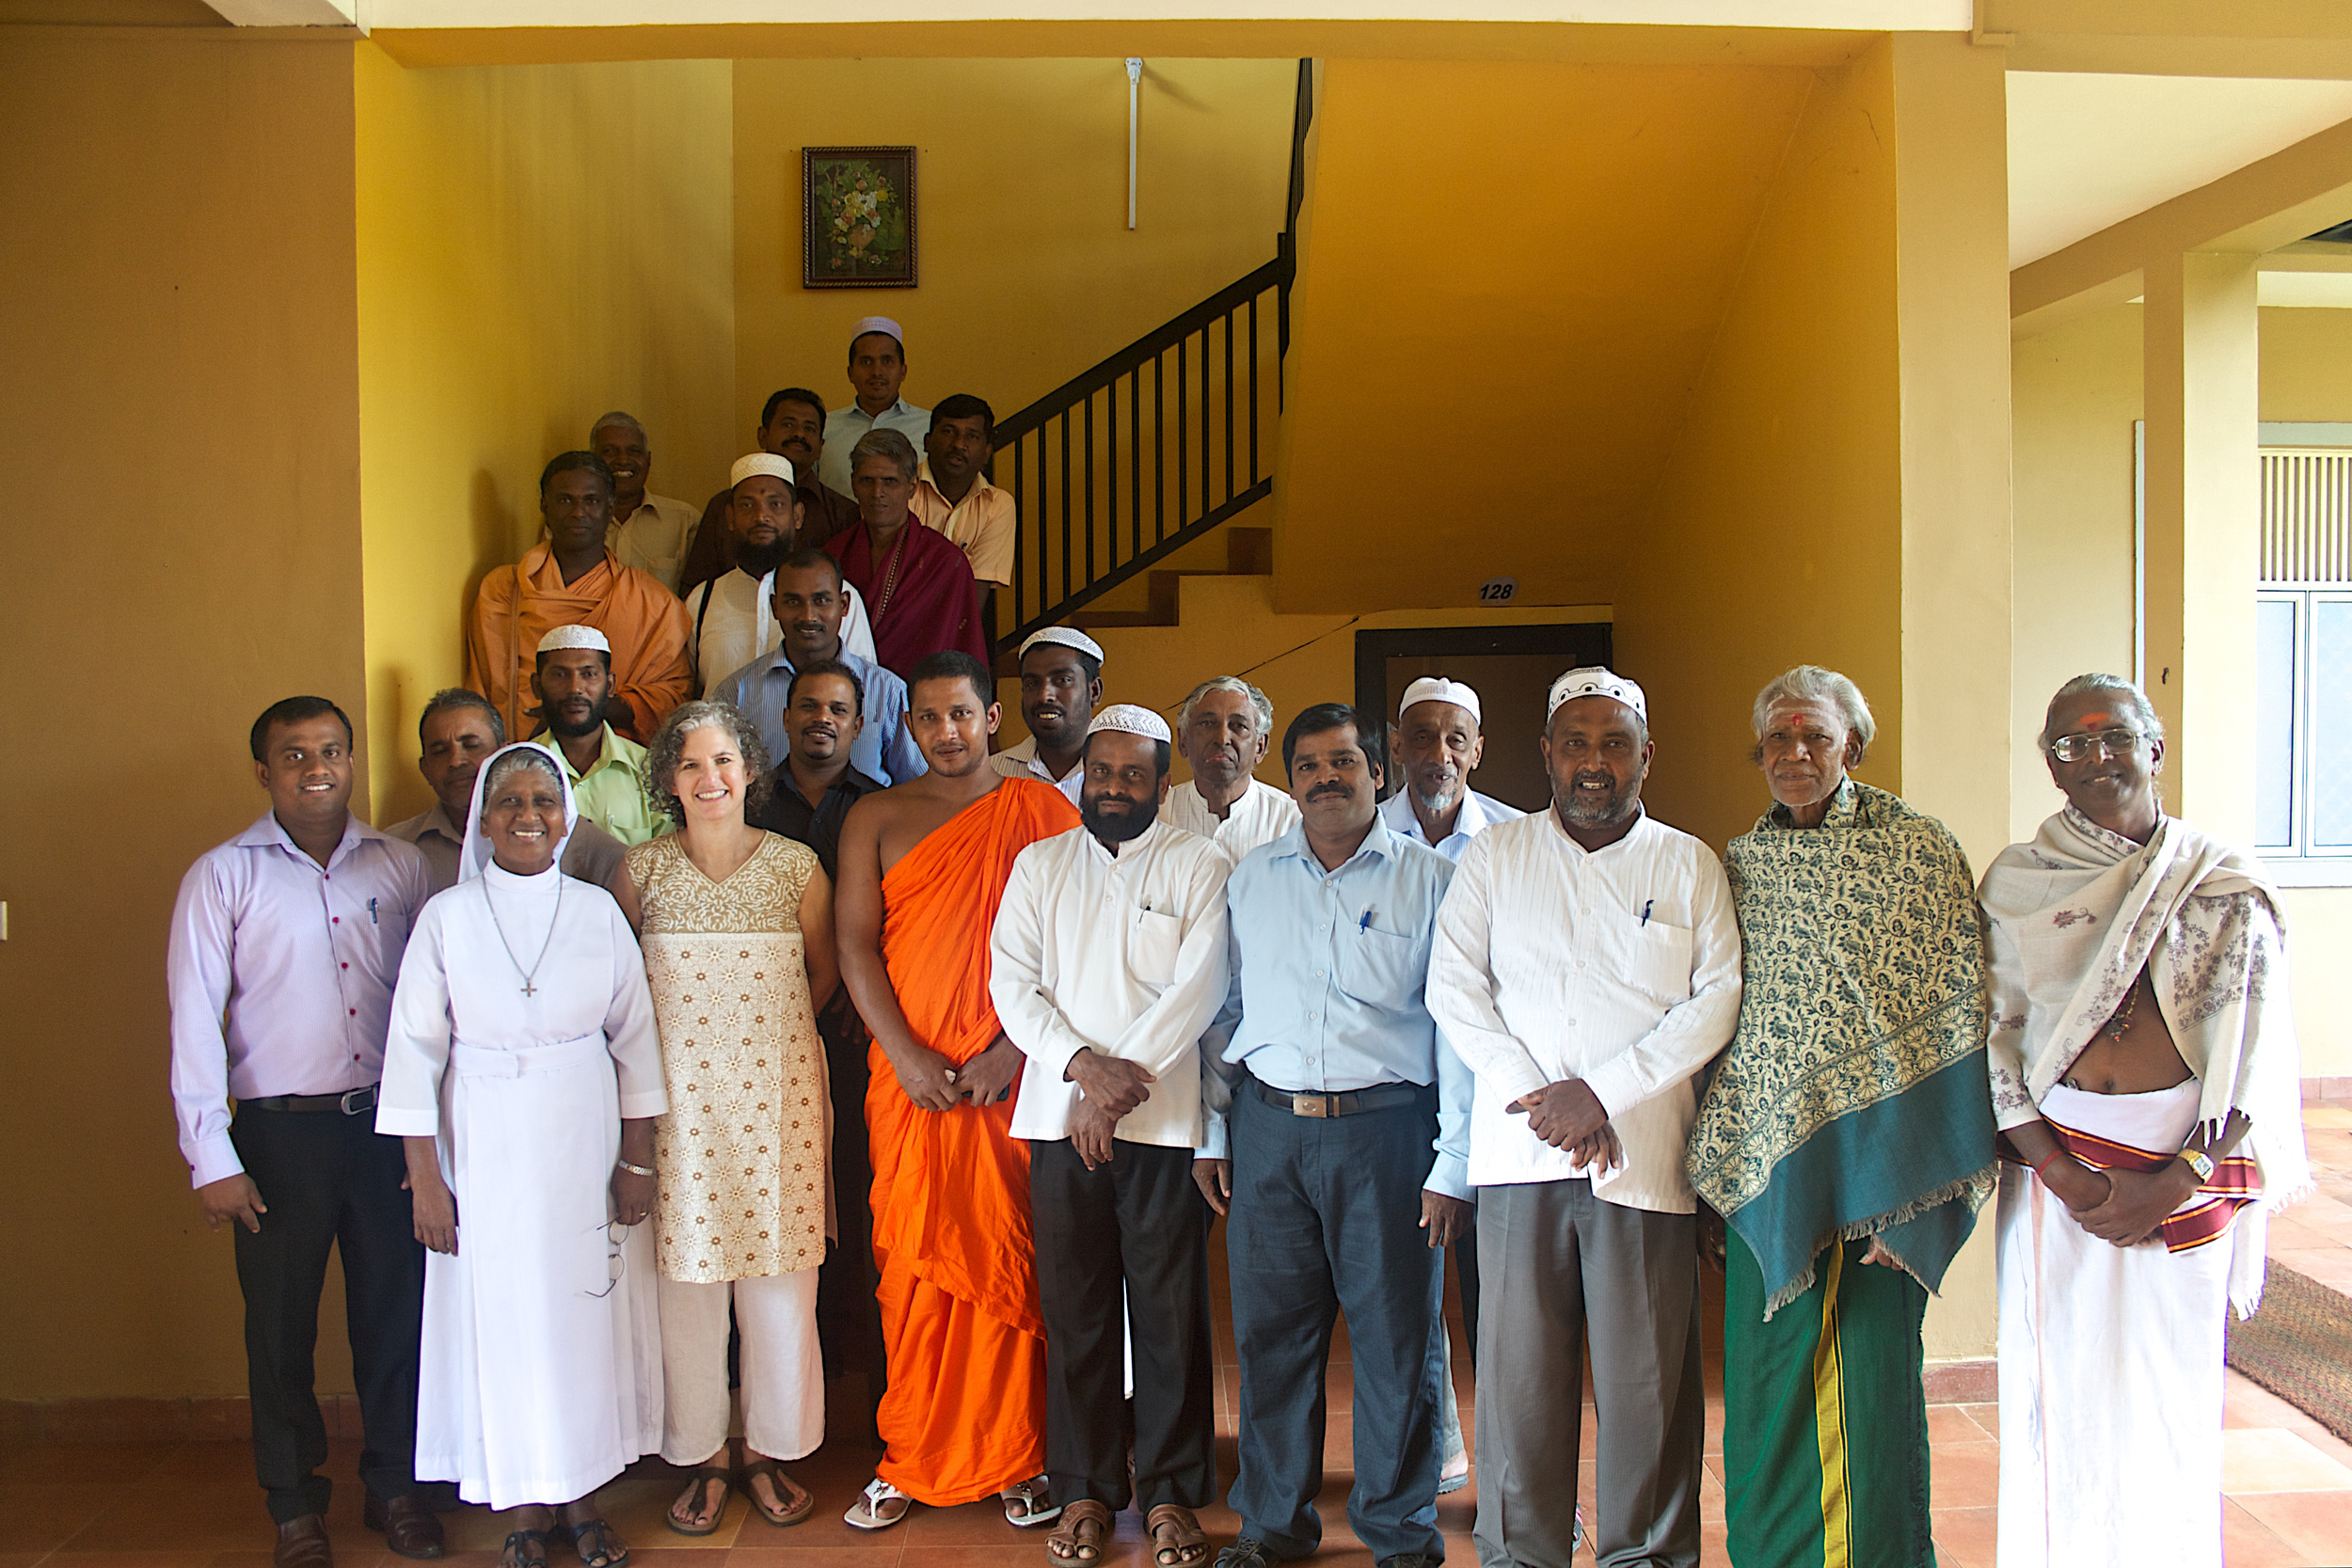 PROOF's Executive Director, Leora Kahn, at the Interfaith Conference in Sri Lanka earlier this year.